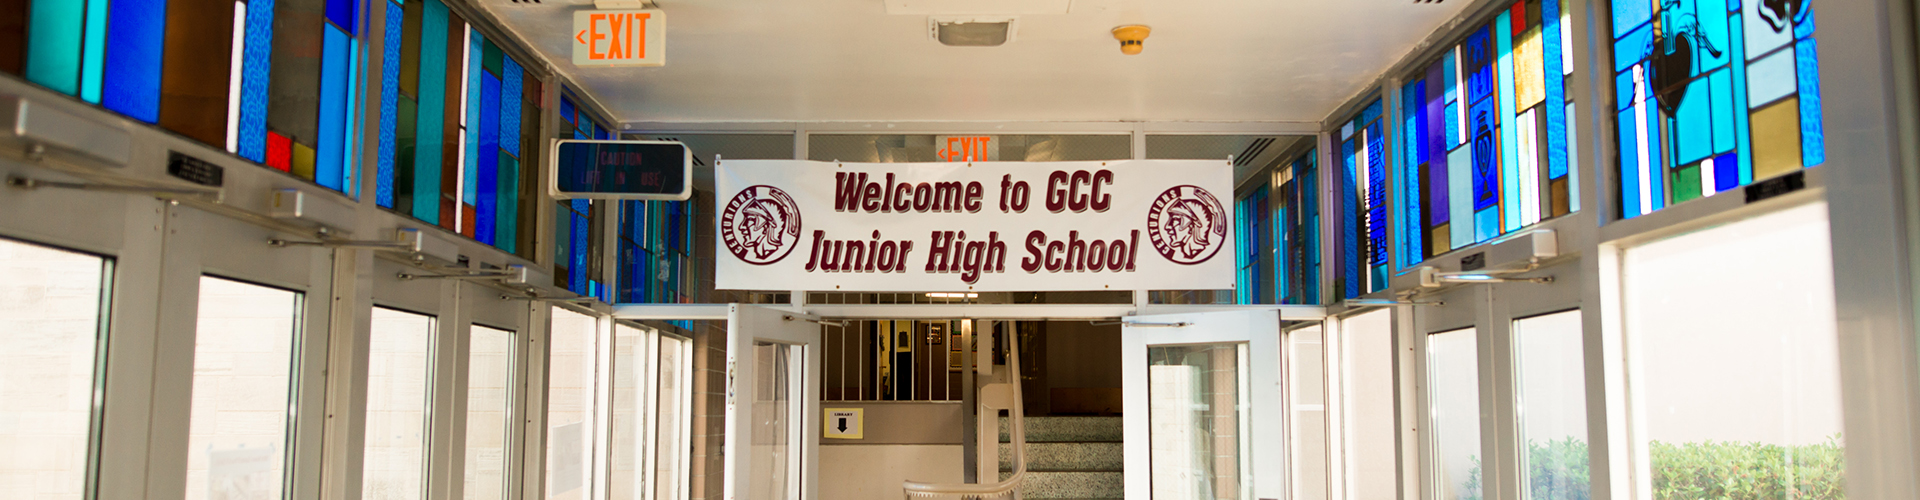 students in school banner